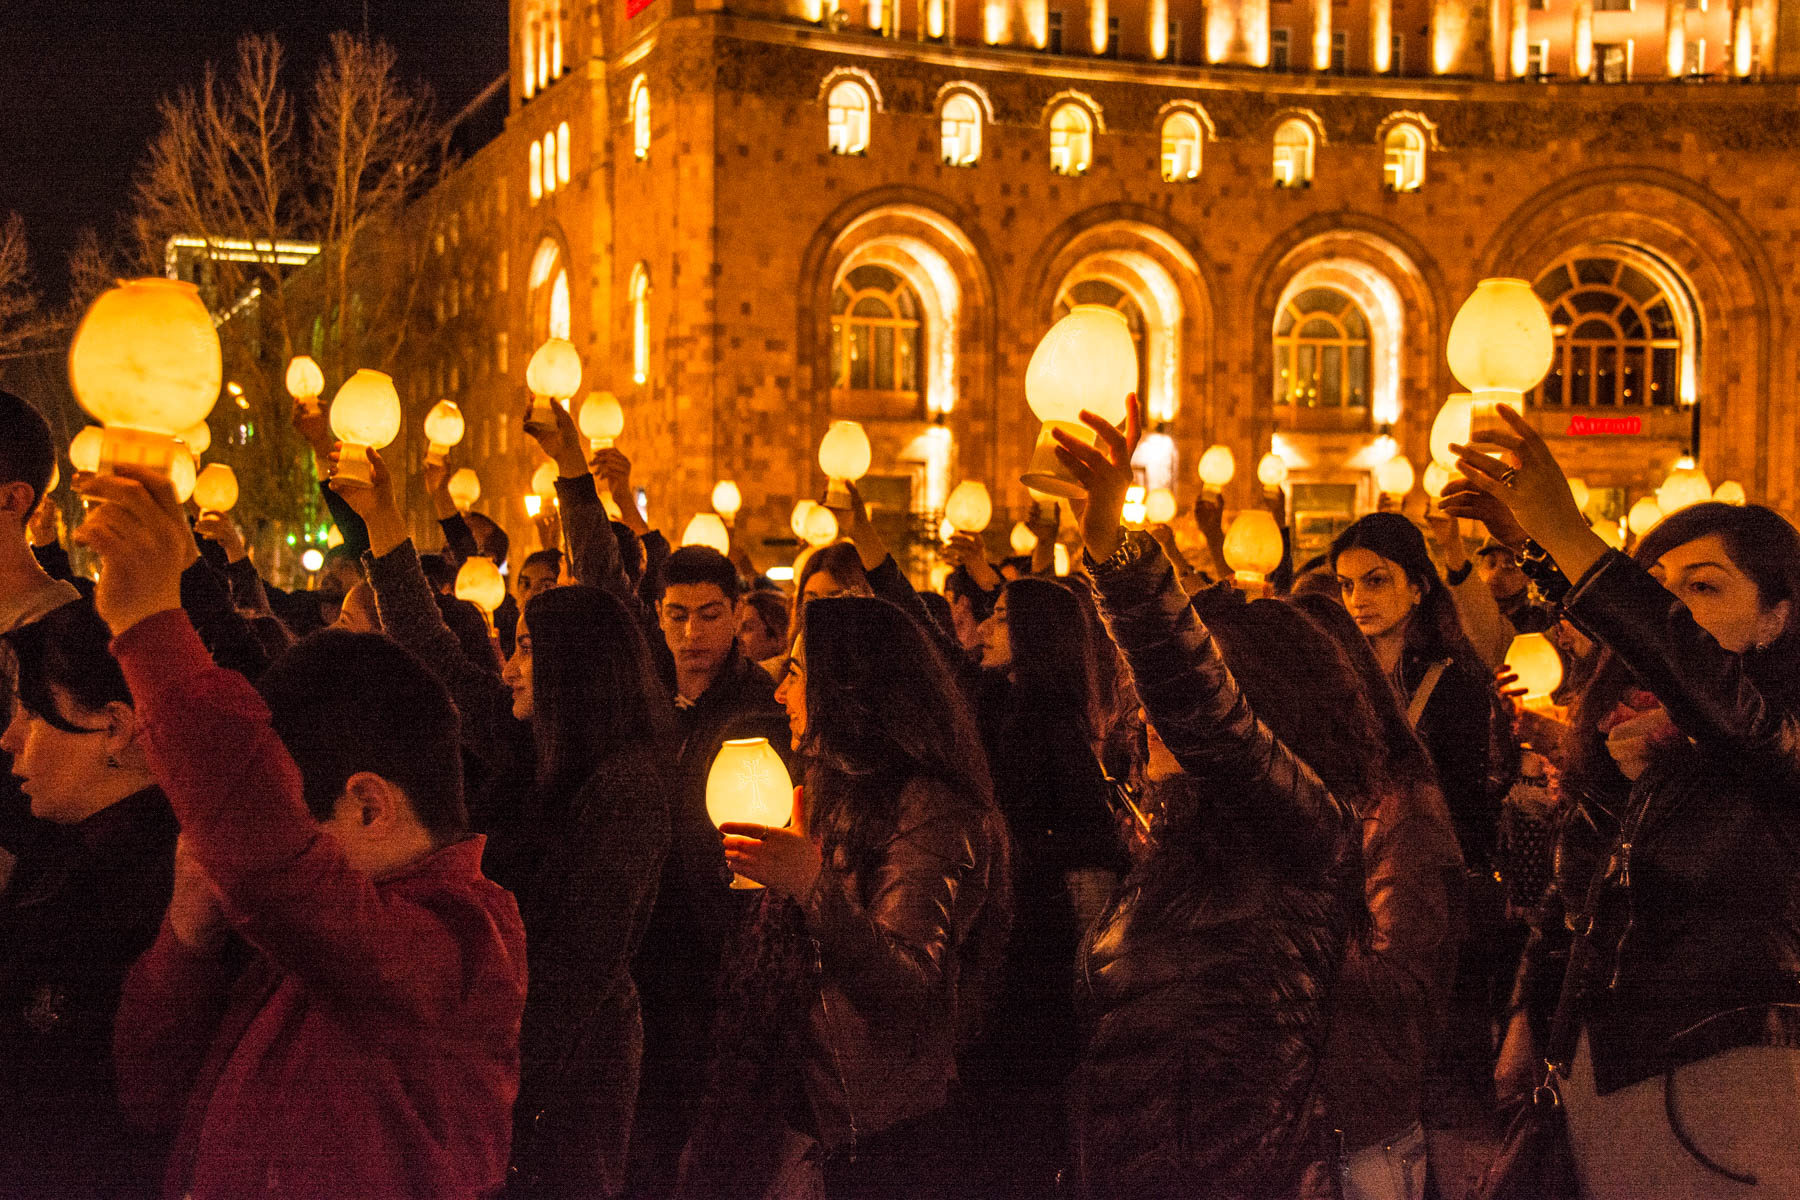 Easter in Armenia - Residents of Yerevan with candles for a ceremony in Republic Square, Yerevan to celebrate Easter in Armenia.